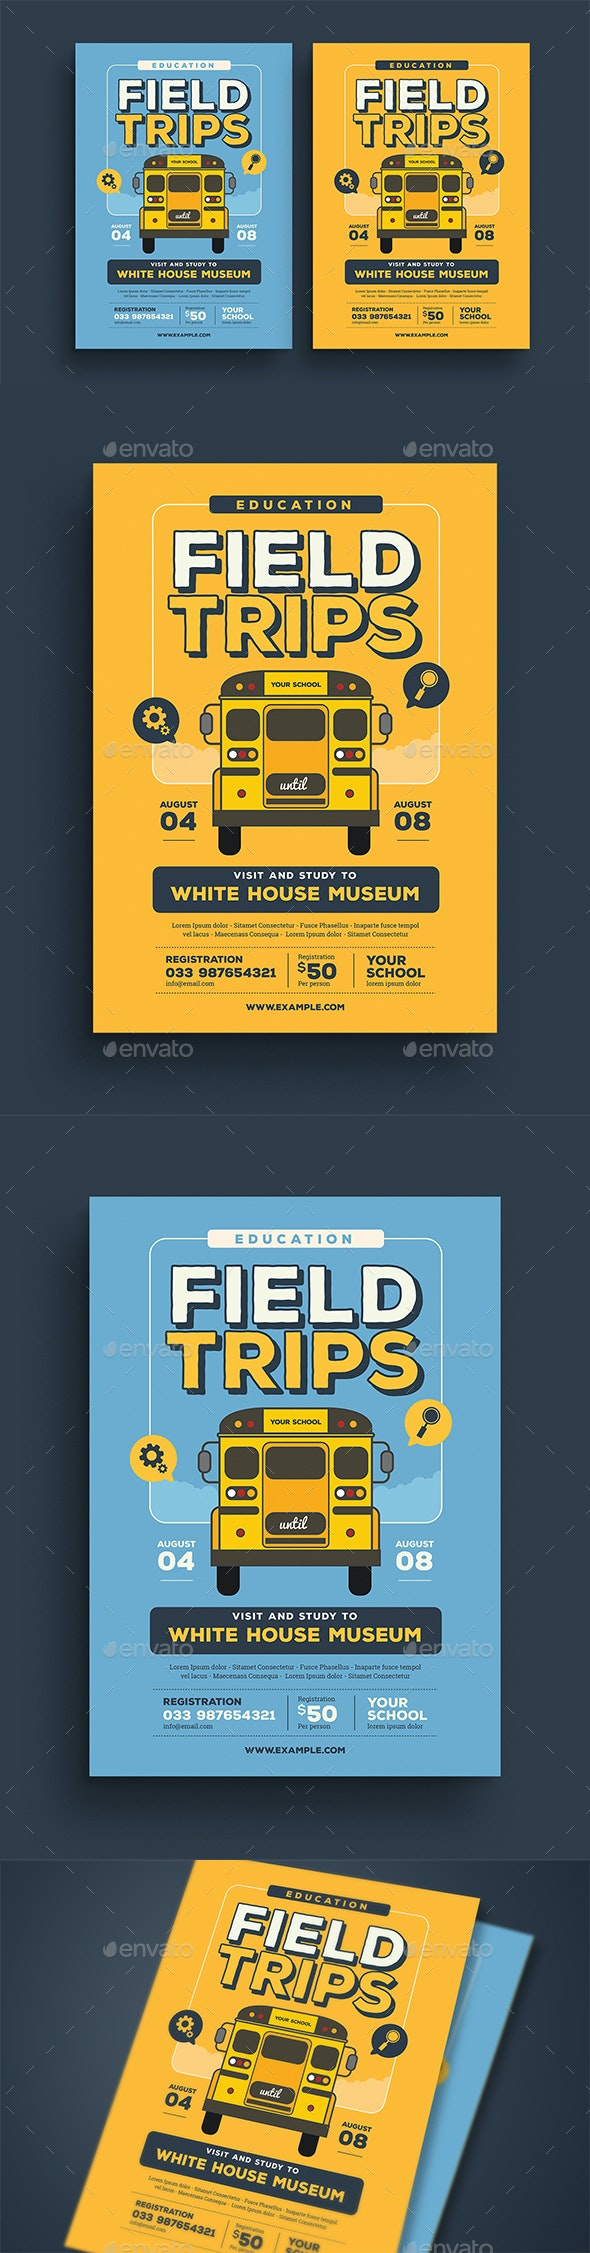 Field Trip Event Flyer - Flyers Print Templates